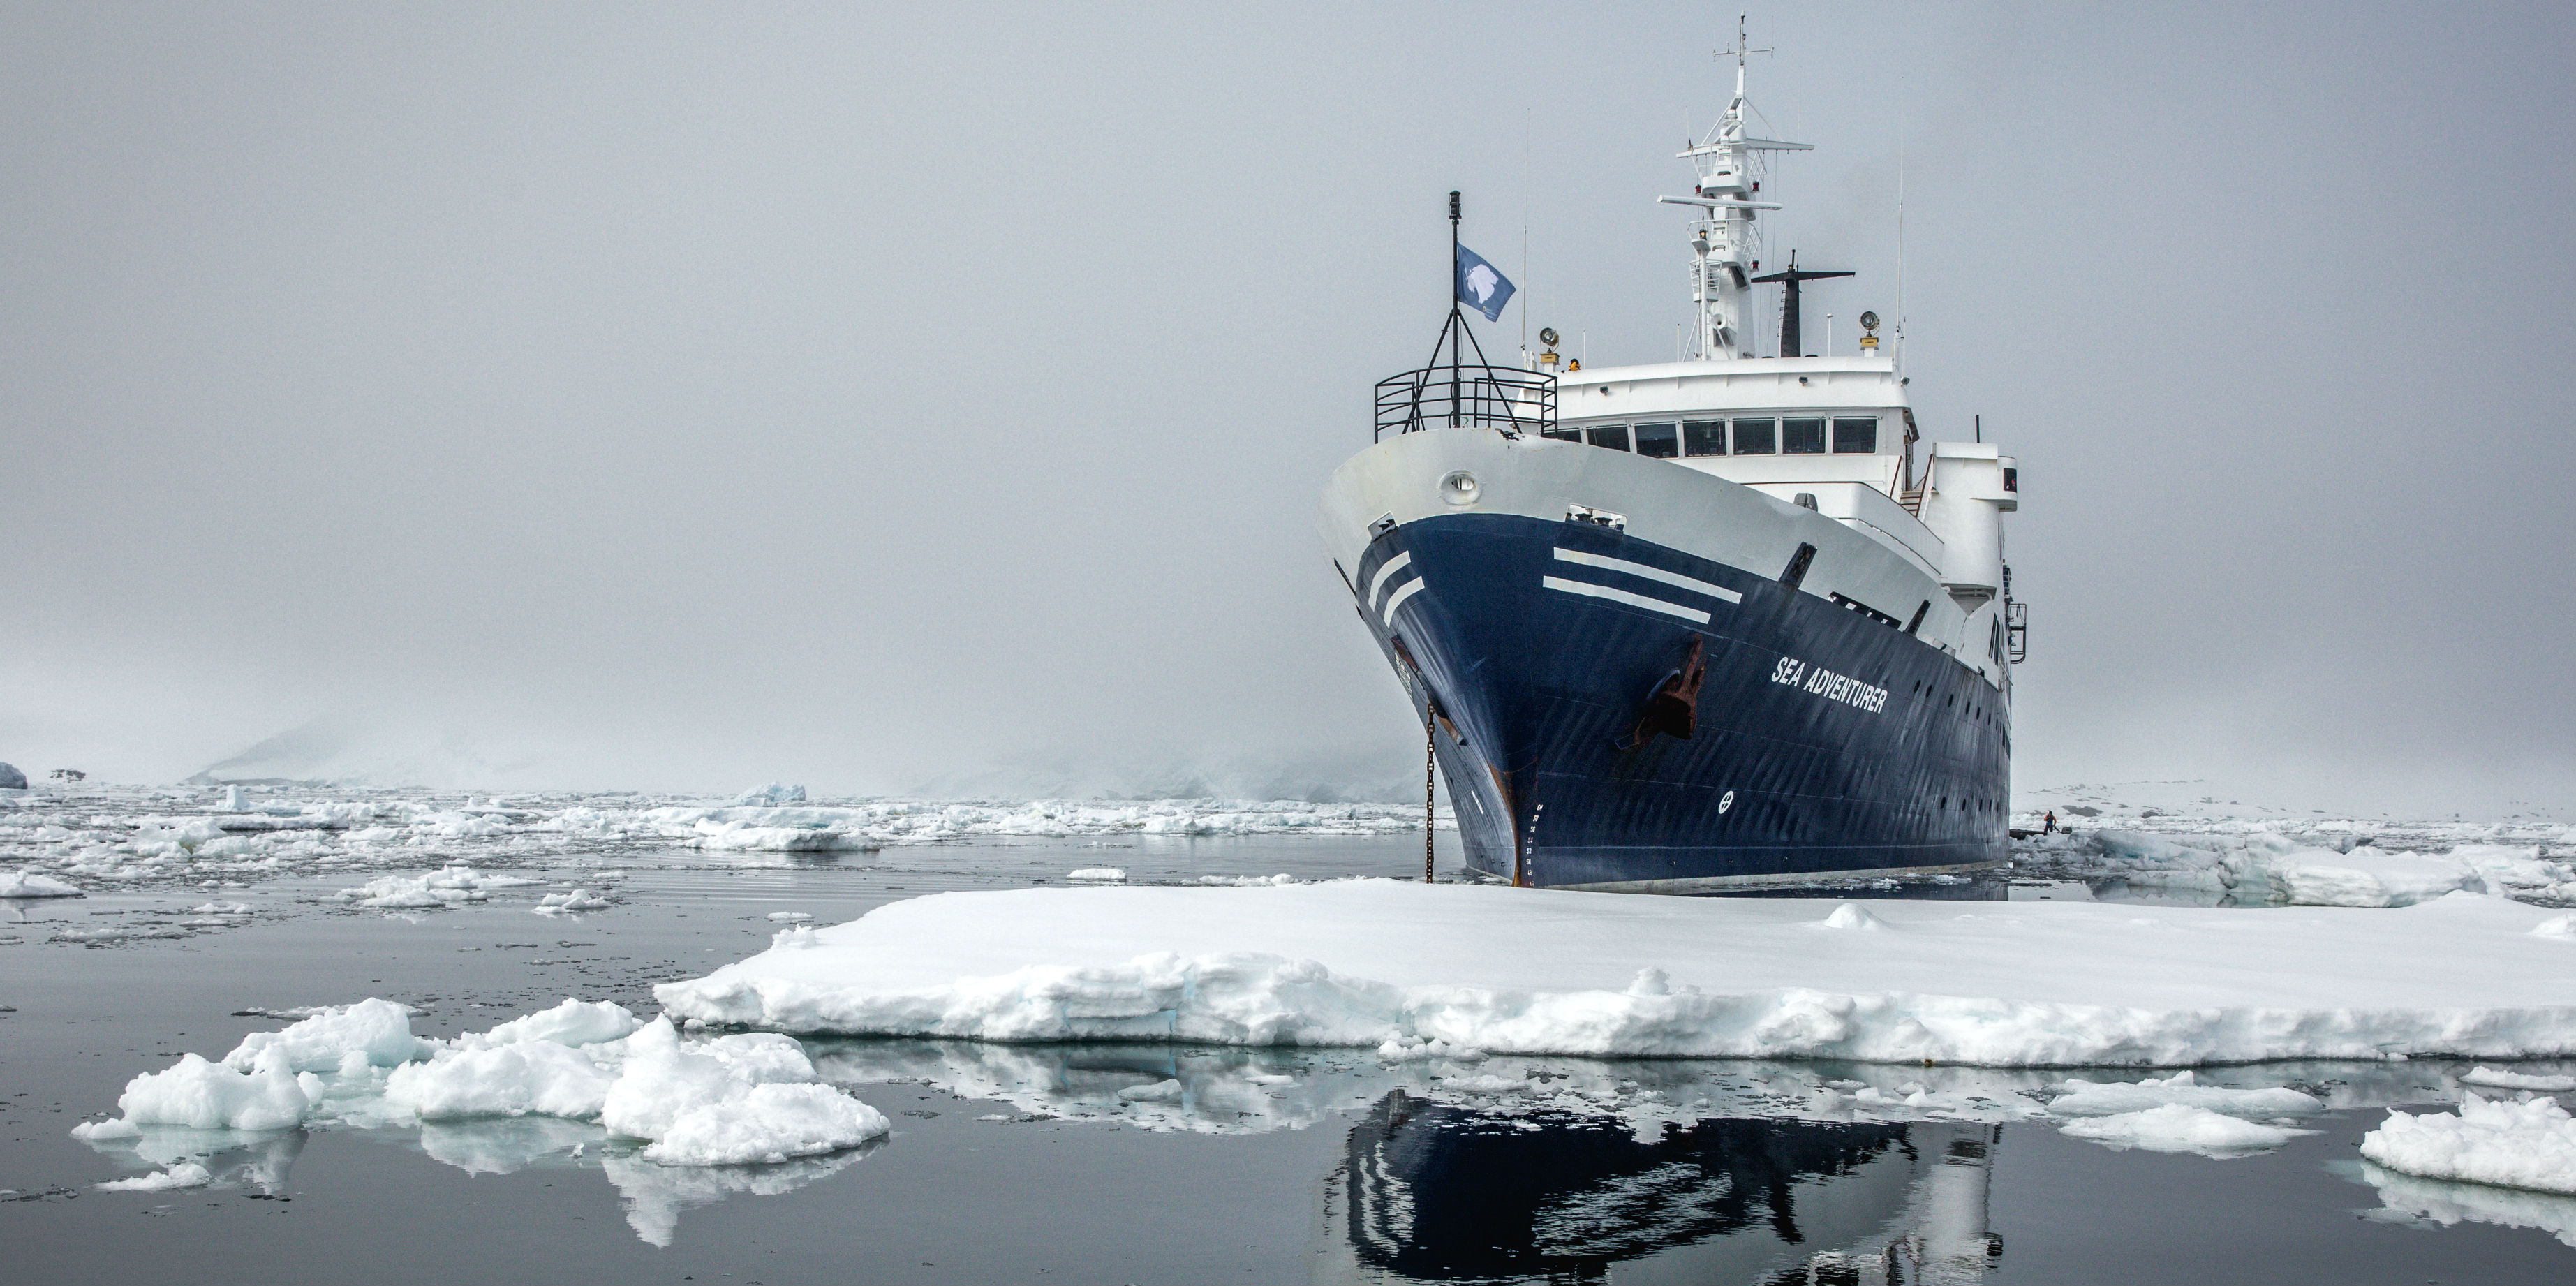 The Sea Adventurer in ice-choked Antarctic waters.